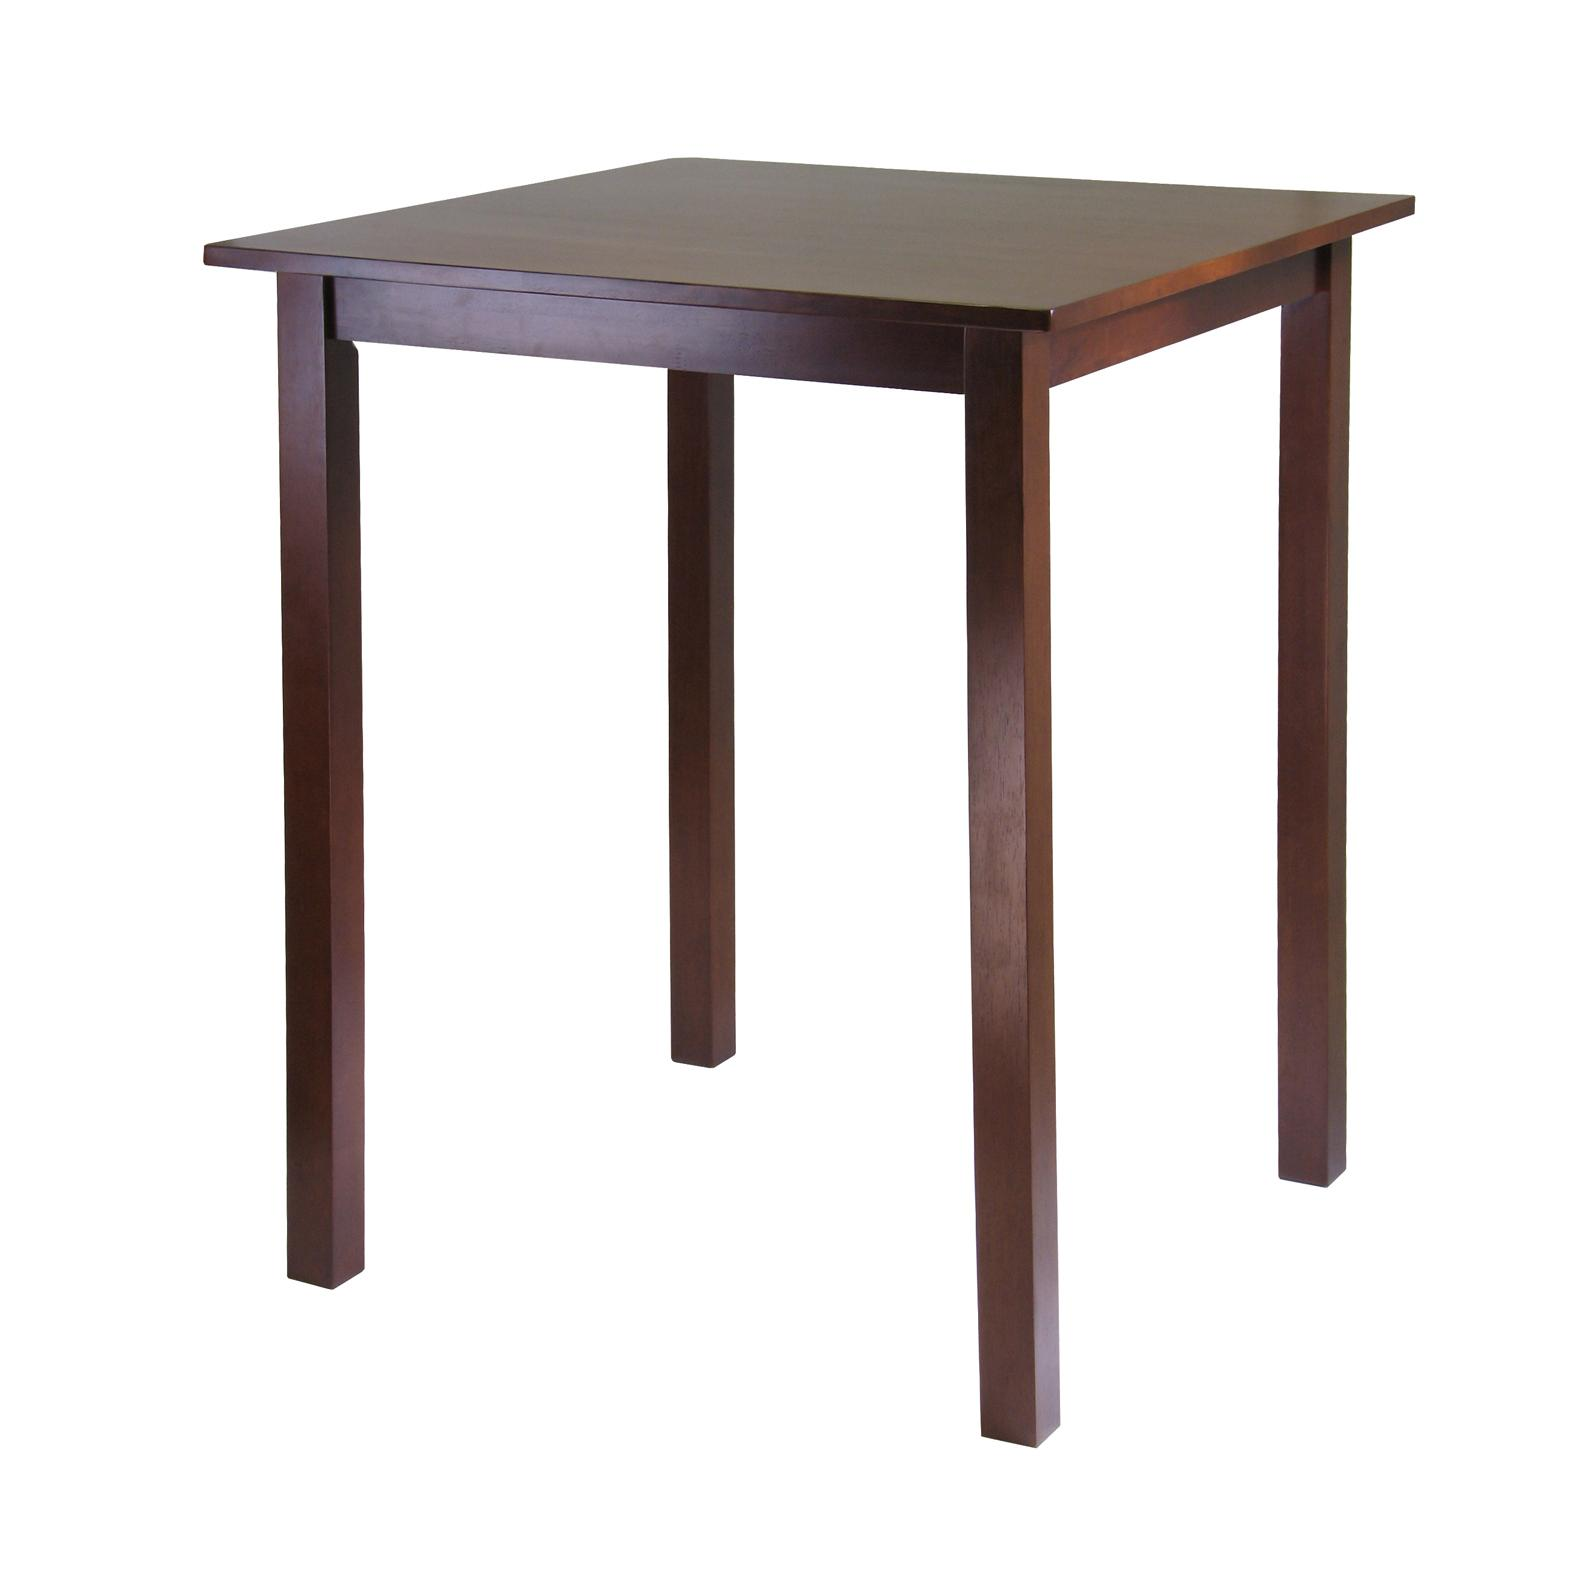 amazoncom winsome solid wood parkland pub square table kitchen  - view larger